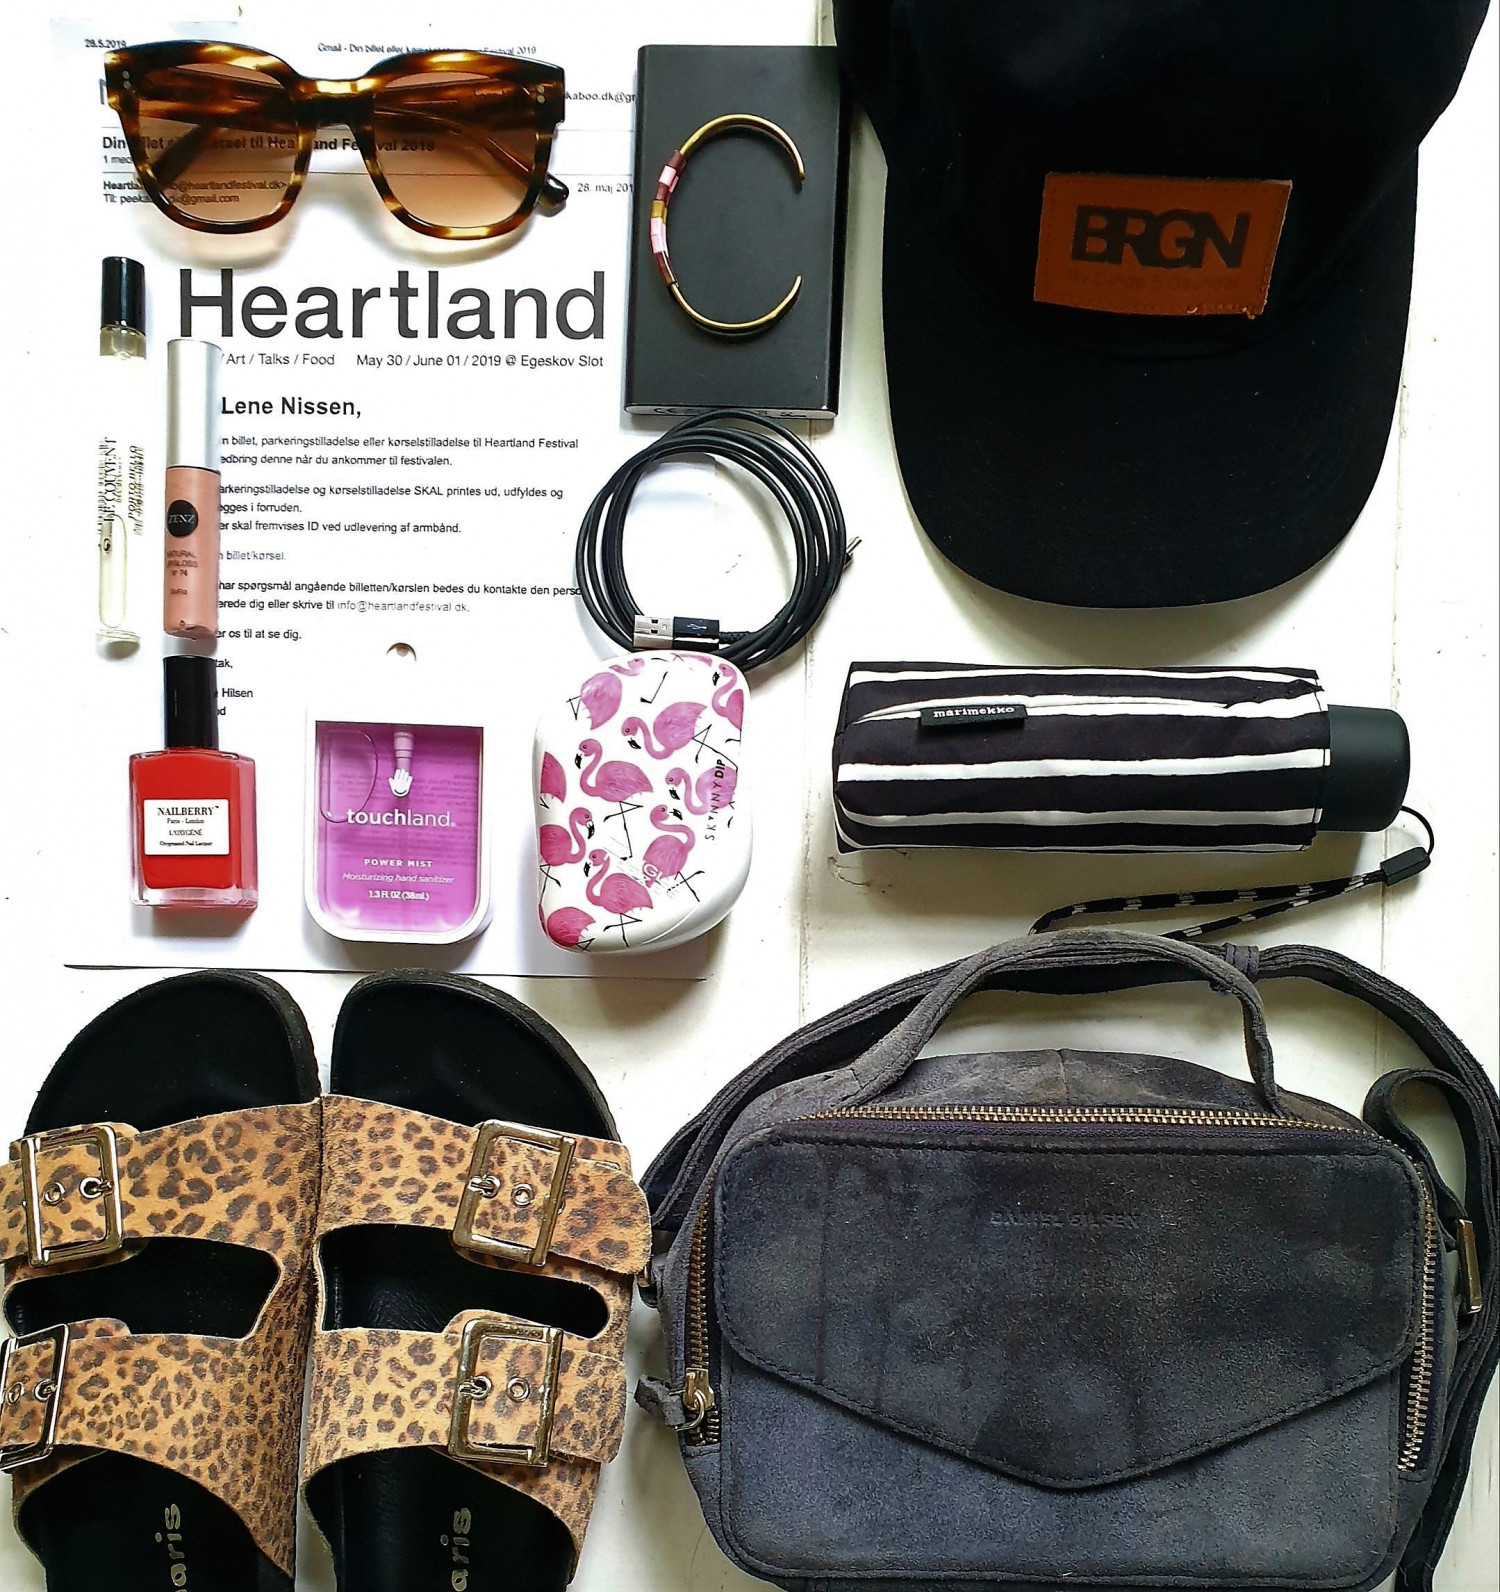 Festival essentials. Sunglasses from Jamie Looks, Bracelet from Useseme, cap from BRGN, perfume from Le Couvent Porto Bello, Lipgloss from Zenz organics, nailpolish from Nailberry, hand santizer, hairbrush tangleteaser, umbrella marimekko, slippers from Tamaris and cross-over suede bag from Daniel Silfen